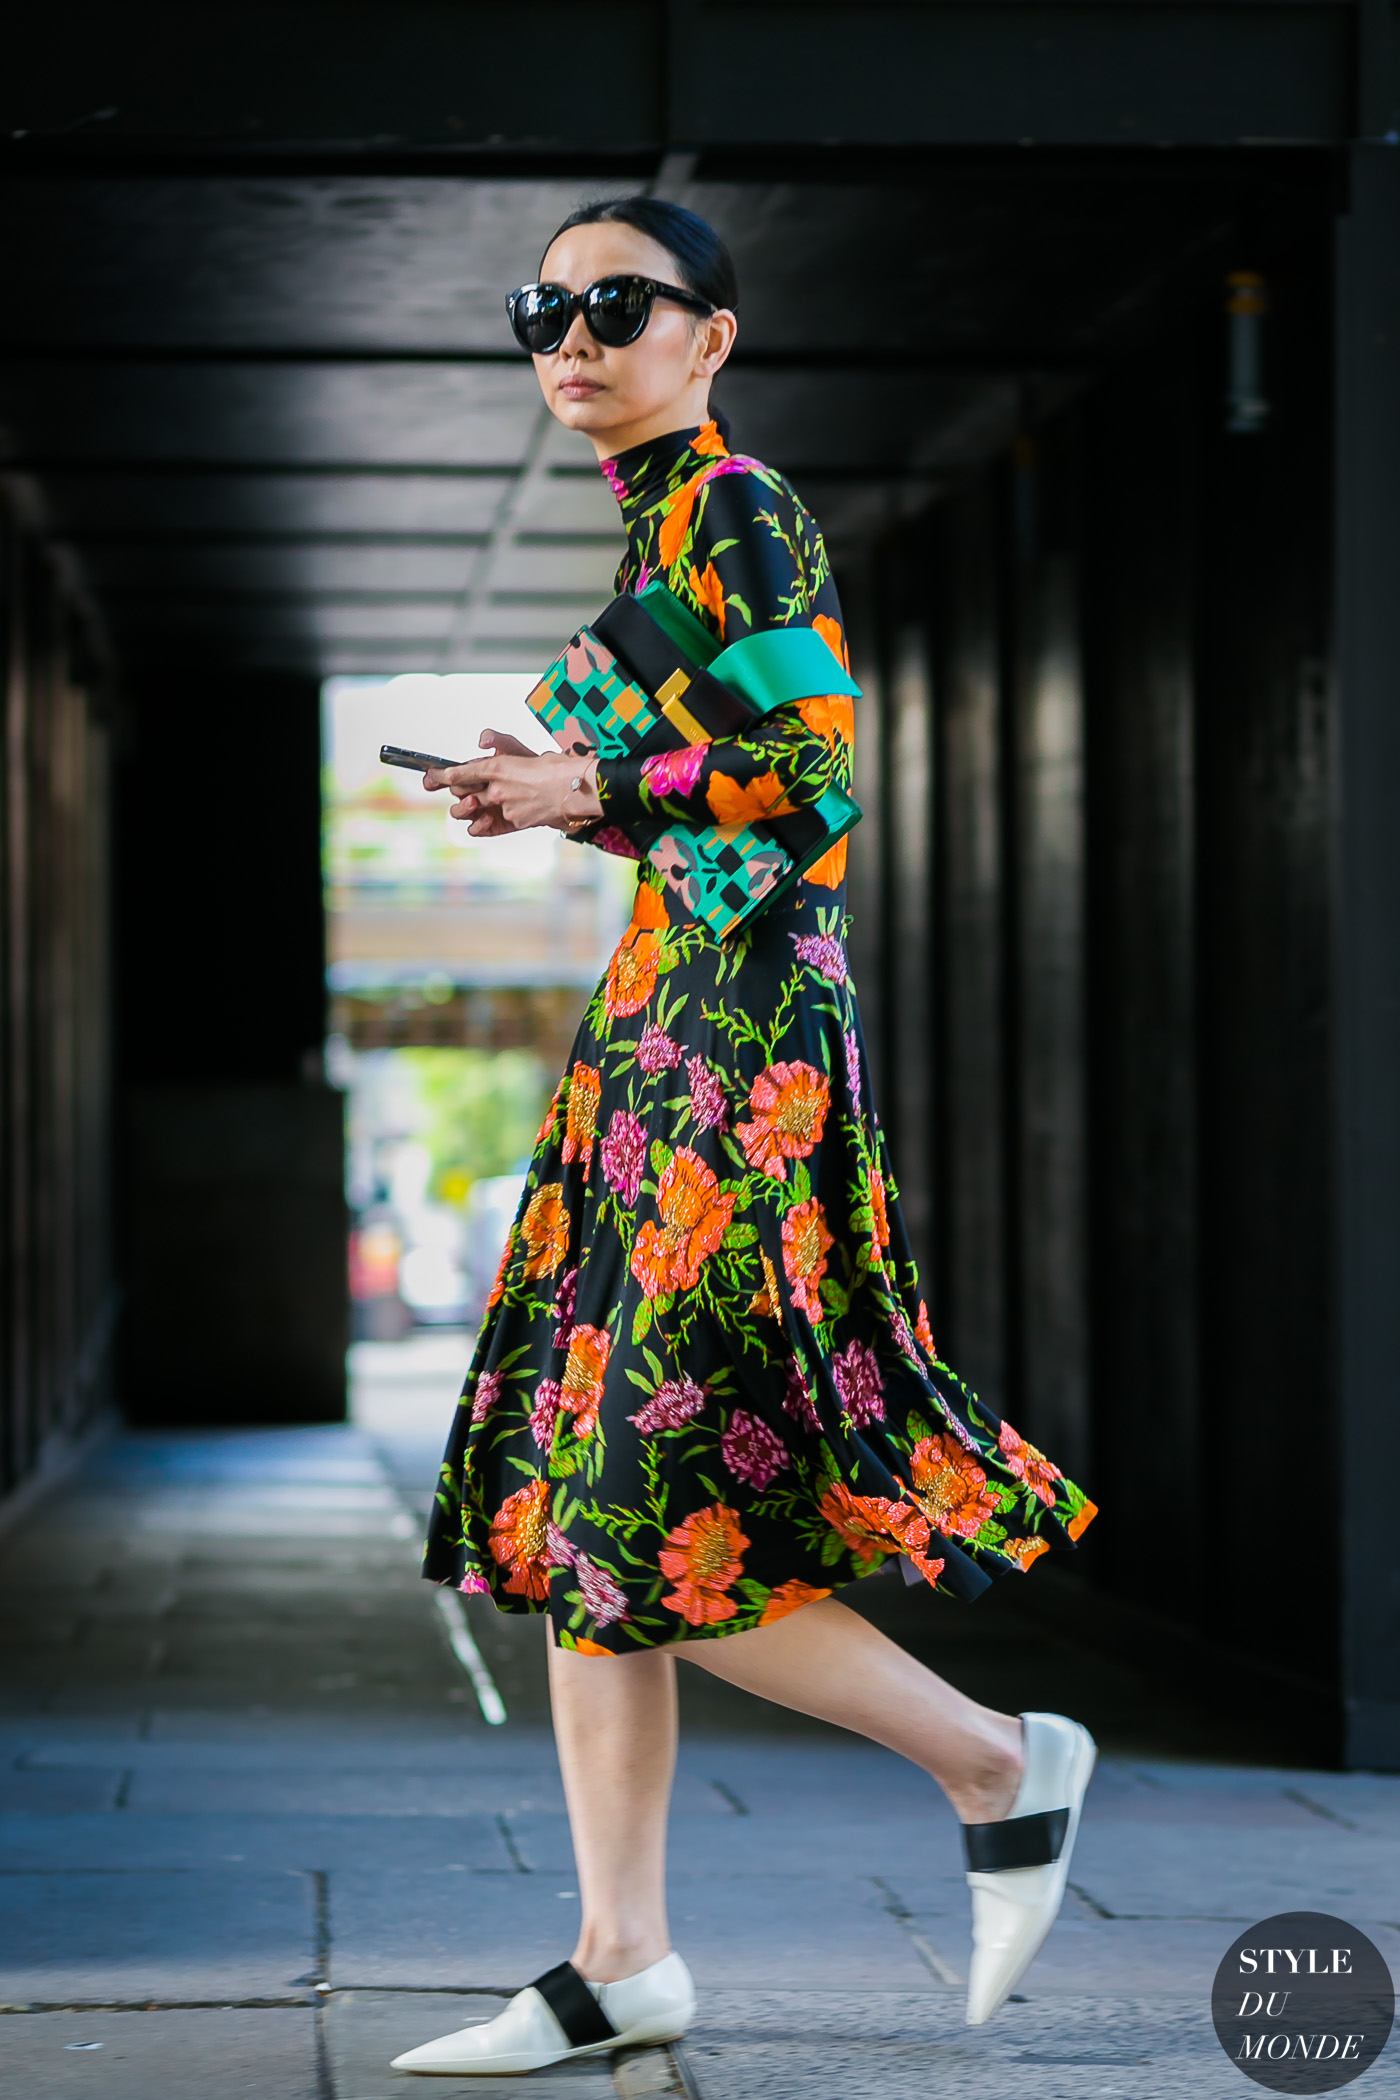 Sherry Shen by STYLEDUMONDE Street Style Fashion Photography0E2A7258